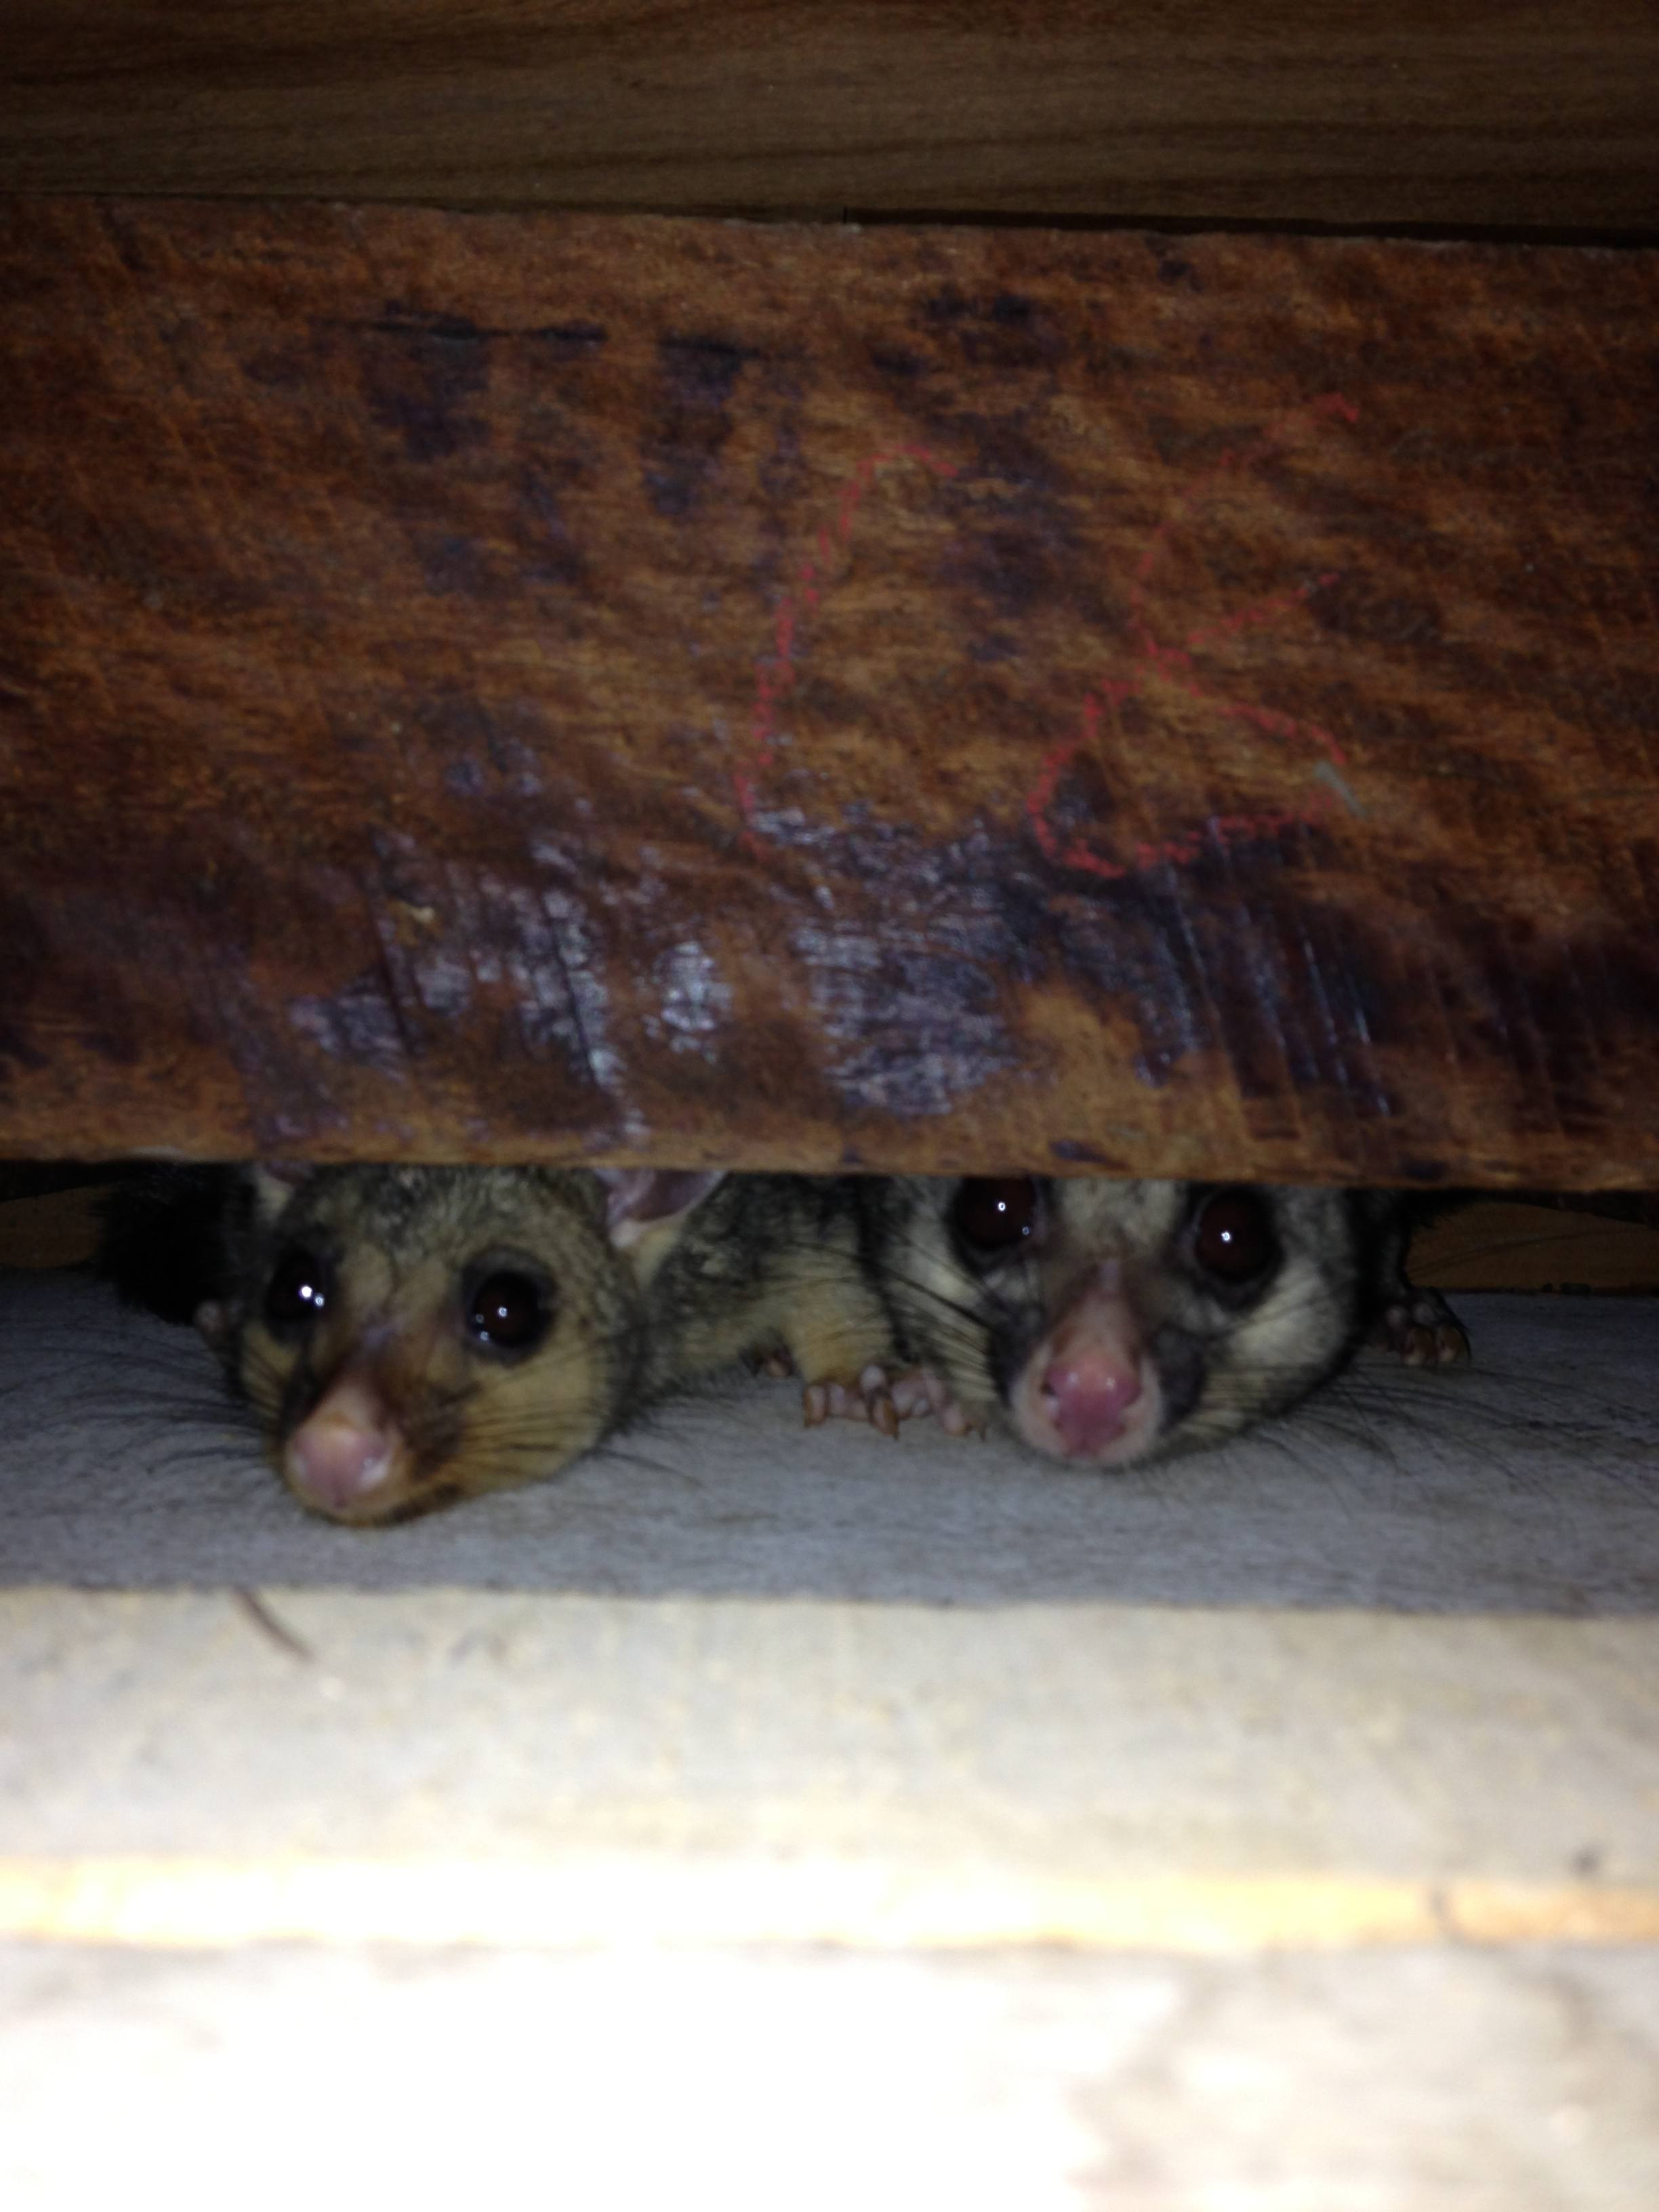 possum proofing to prevent possums entering